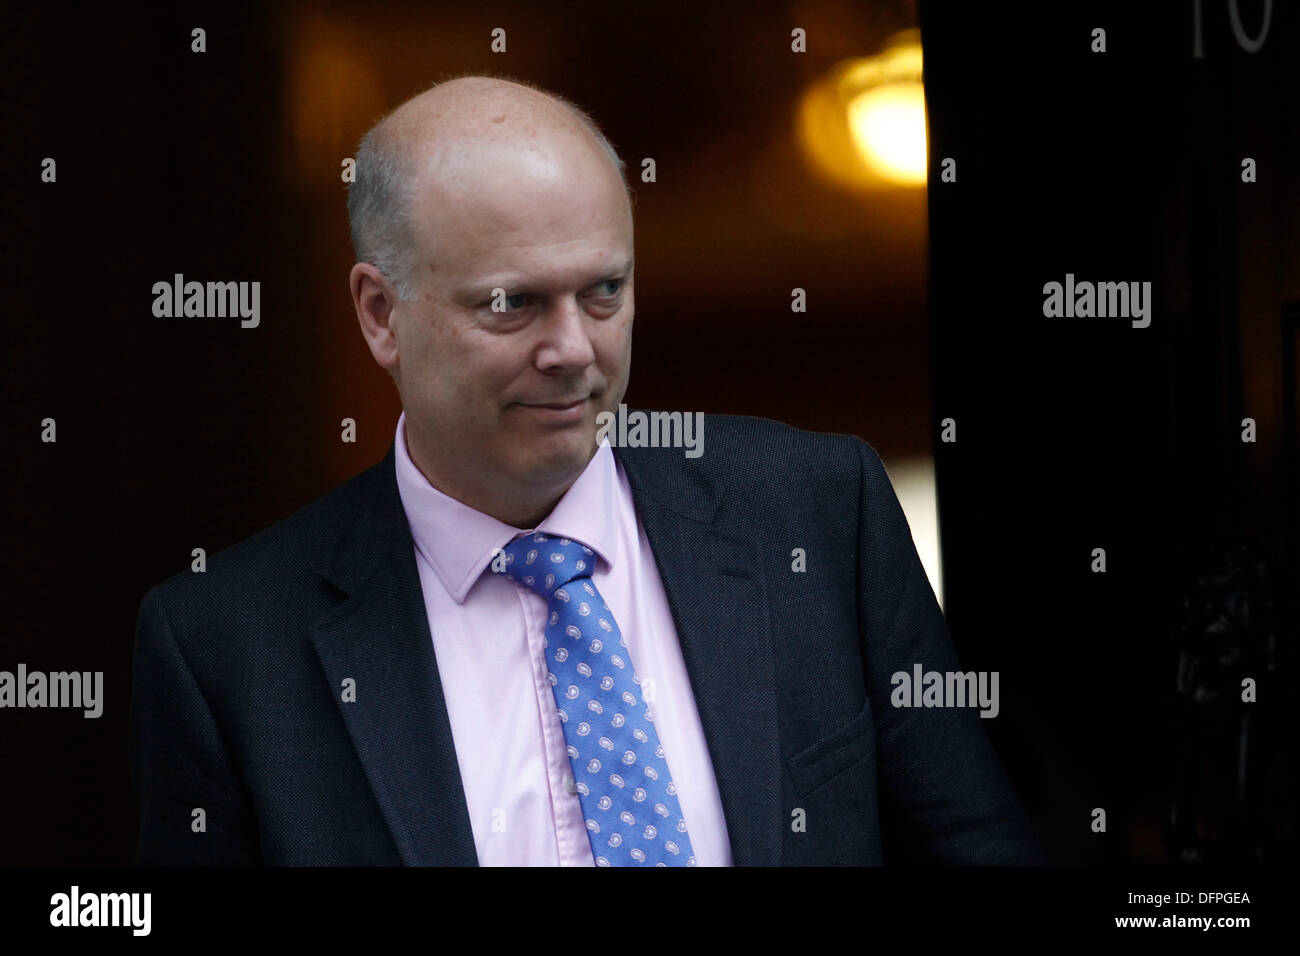 London, UK. 8th October 2013. Justice Secretary Chris Grayling attends the weekly cabinet meeting at No:10 Downing Street in London, Britain, on 08 October 2013.((Photo by Tal Cohen/Alamy Live News) - Stock Image